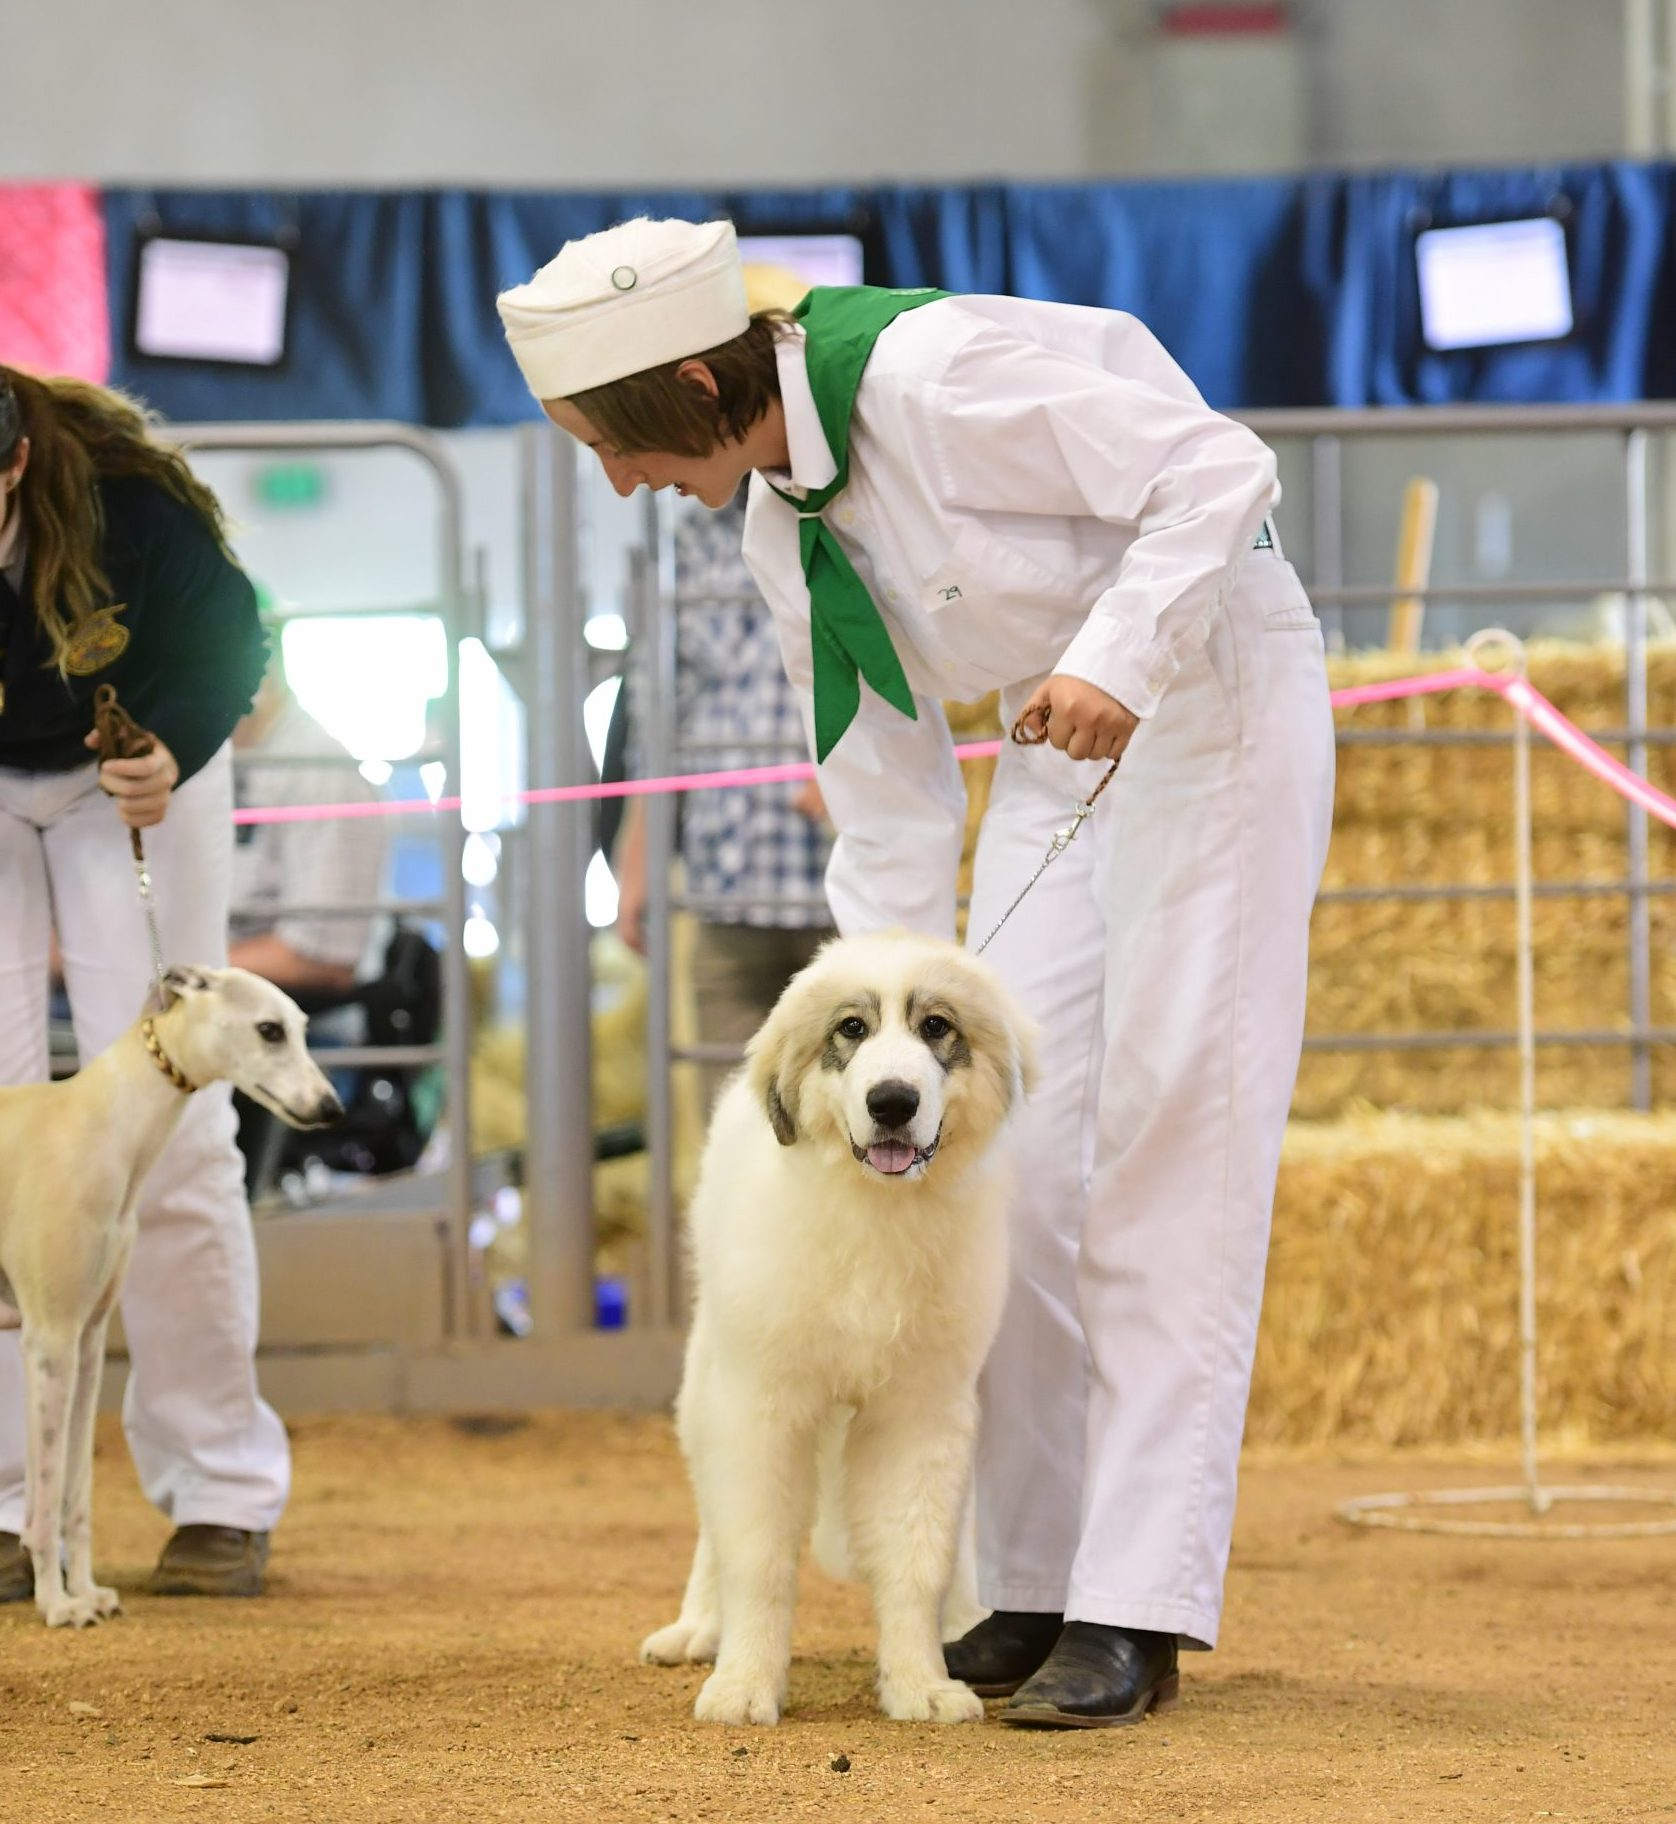 Show dog standing with person